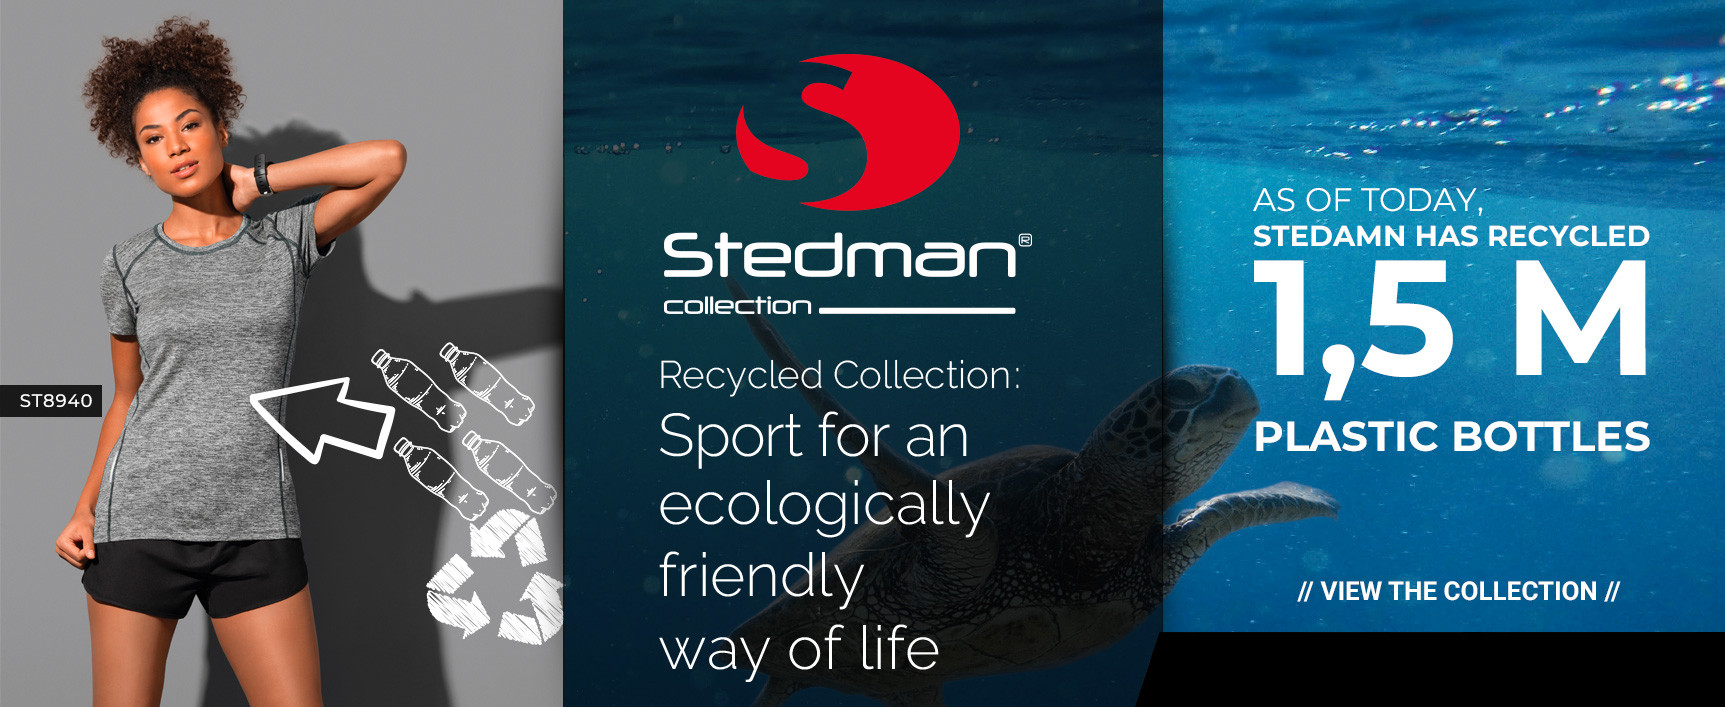 Stedman : Recycled Collection